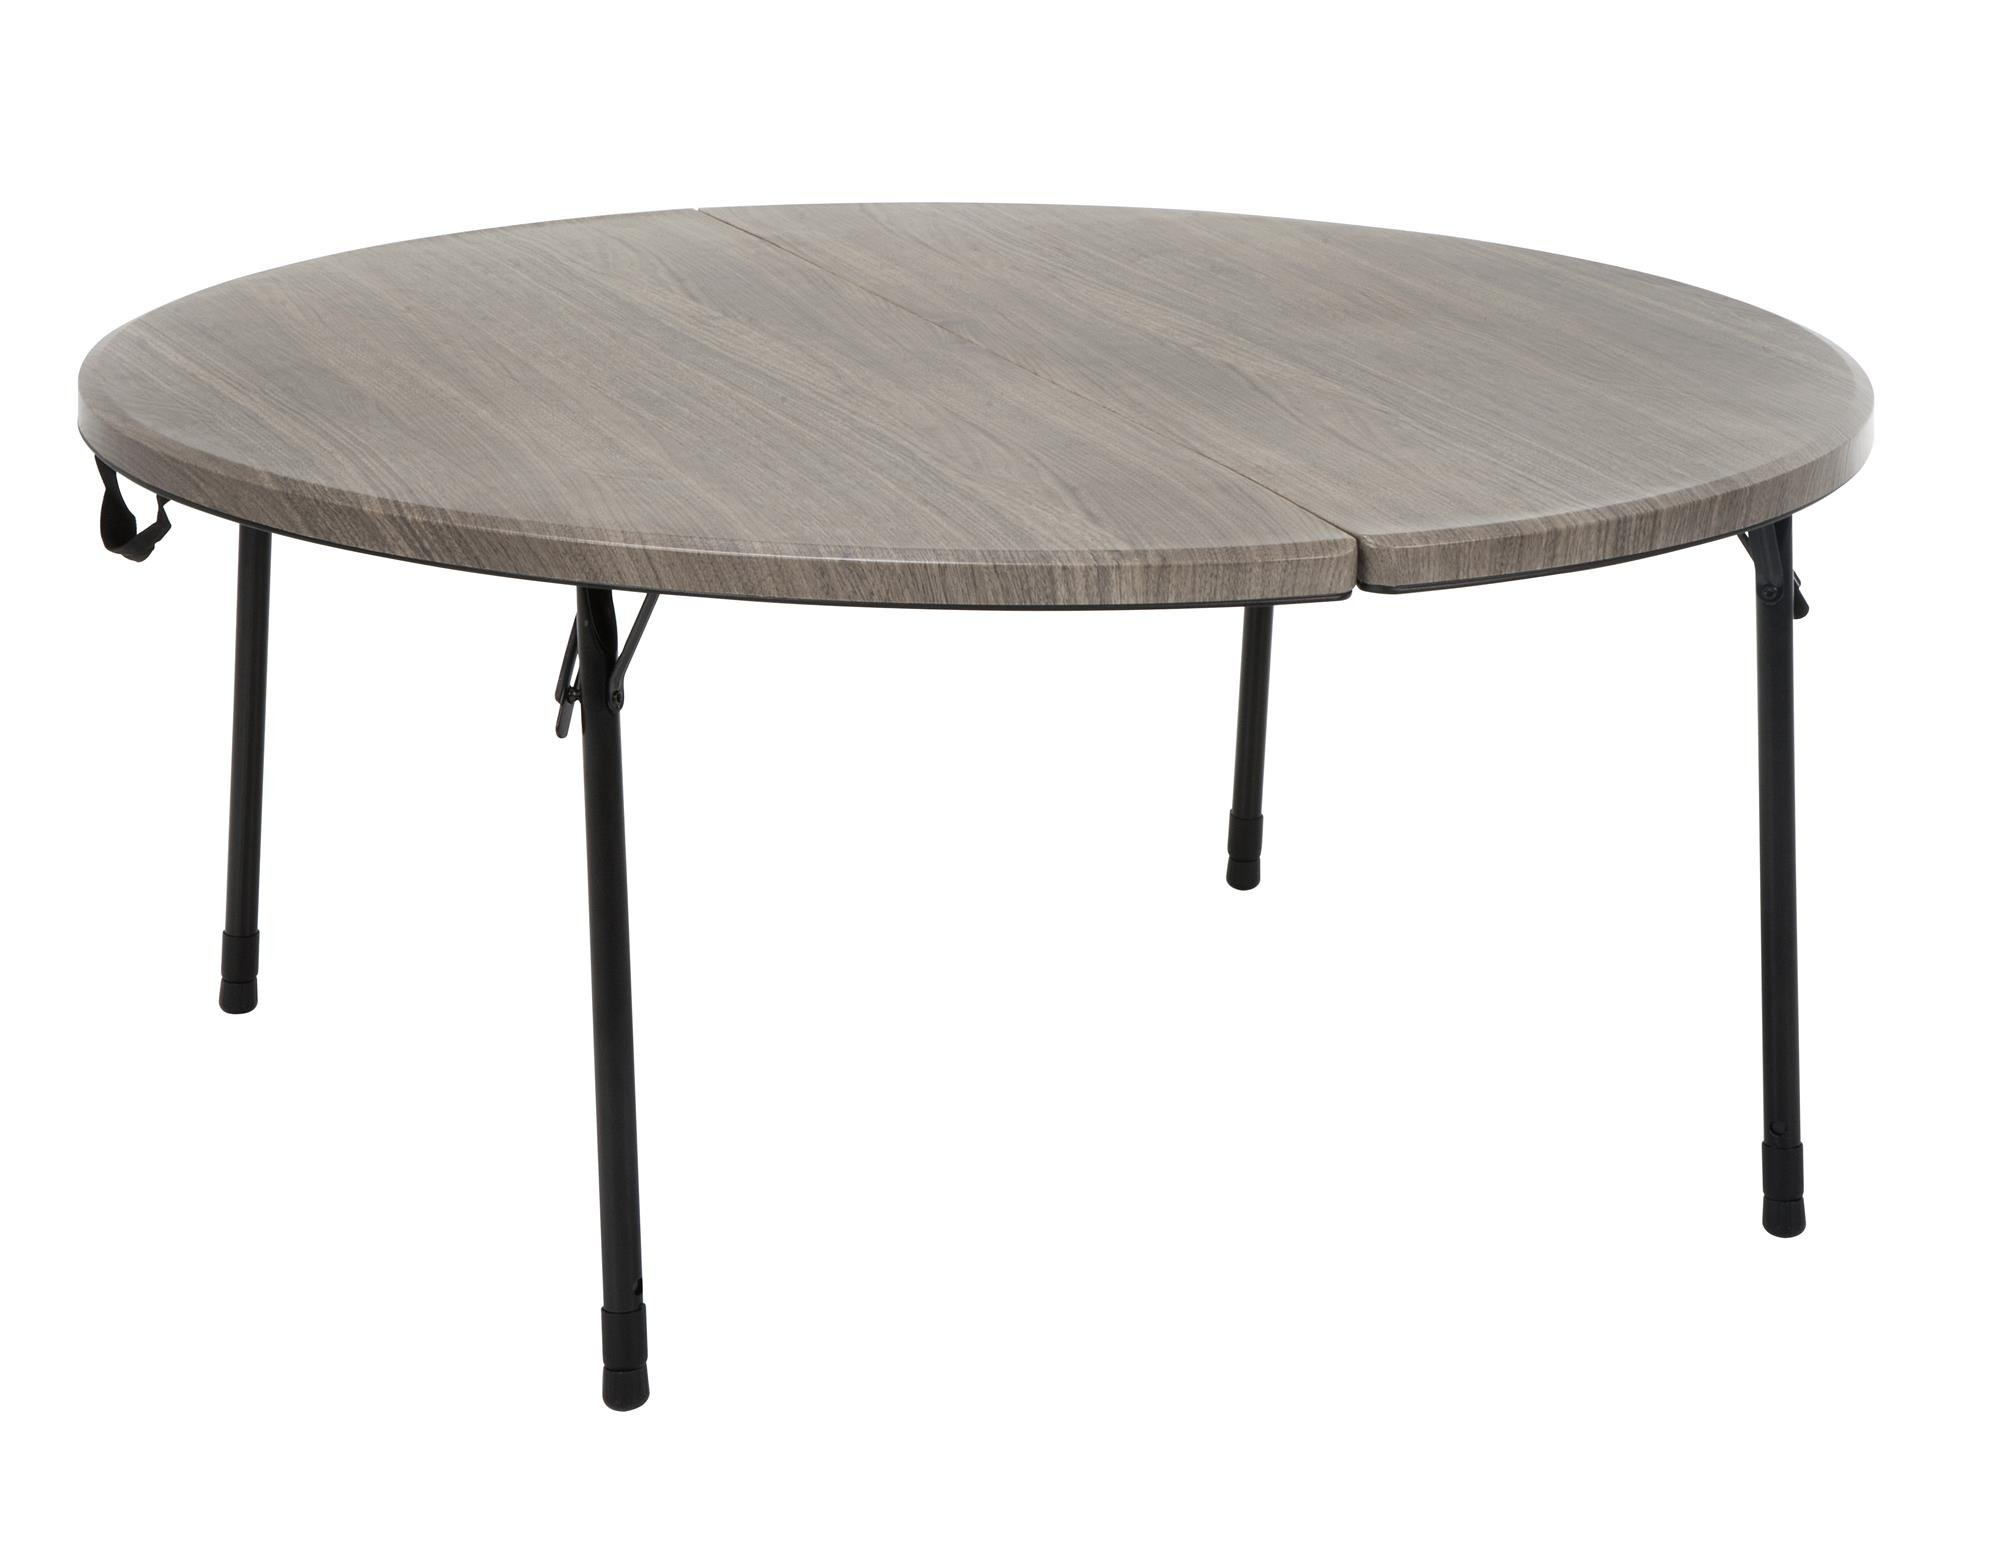 Cosco 48 in. Round Fold in Half Table, Light Gray Wood Grain with Black Frame